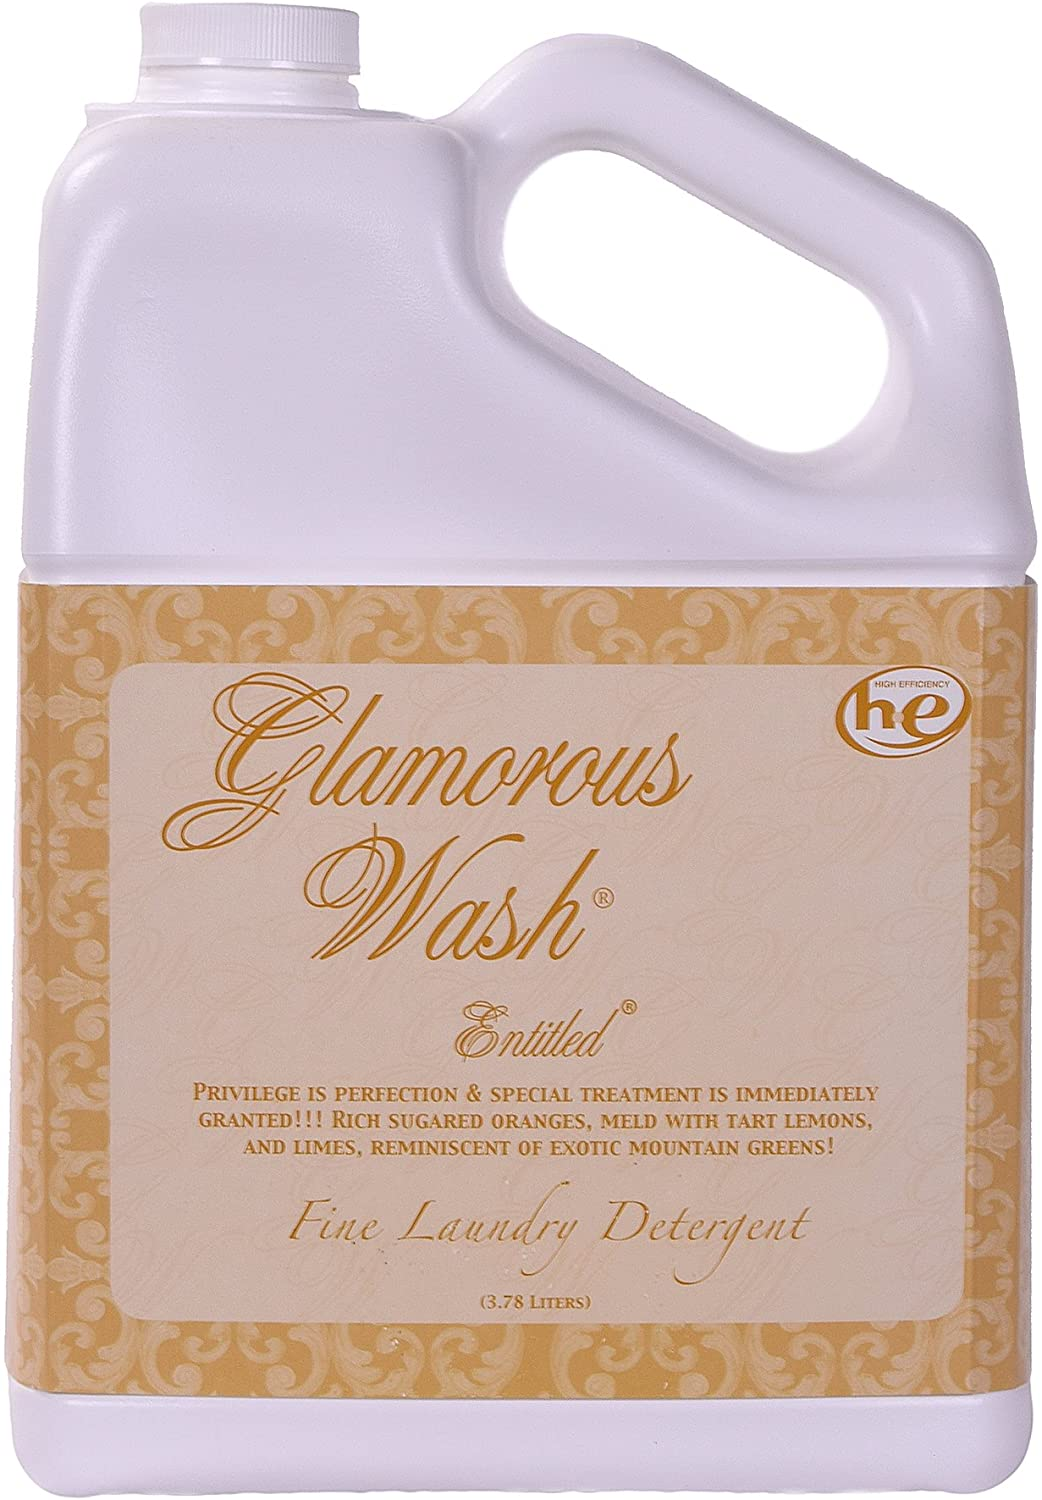 Tyler ENTITLED Glamorous Fine Laundry Detergent, 128 Ounce